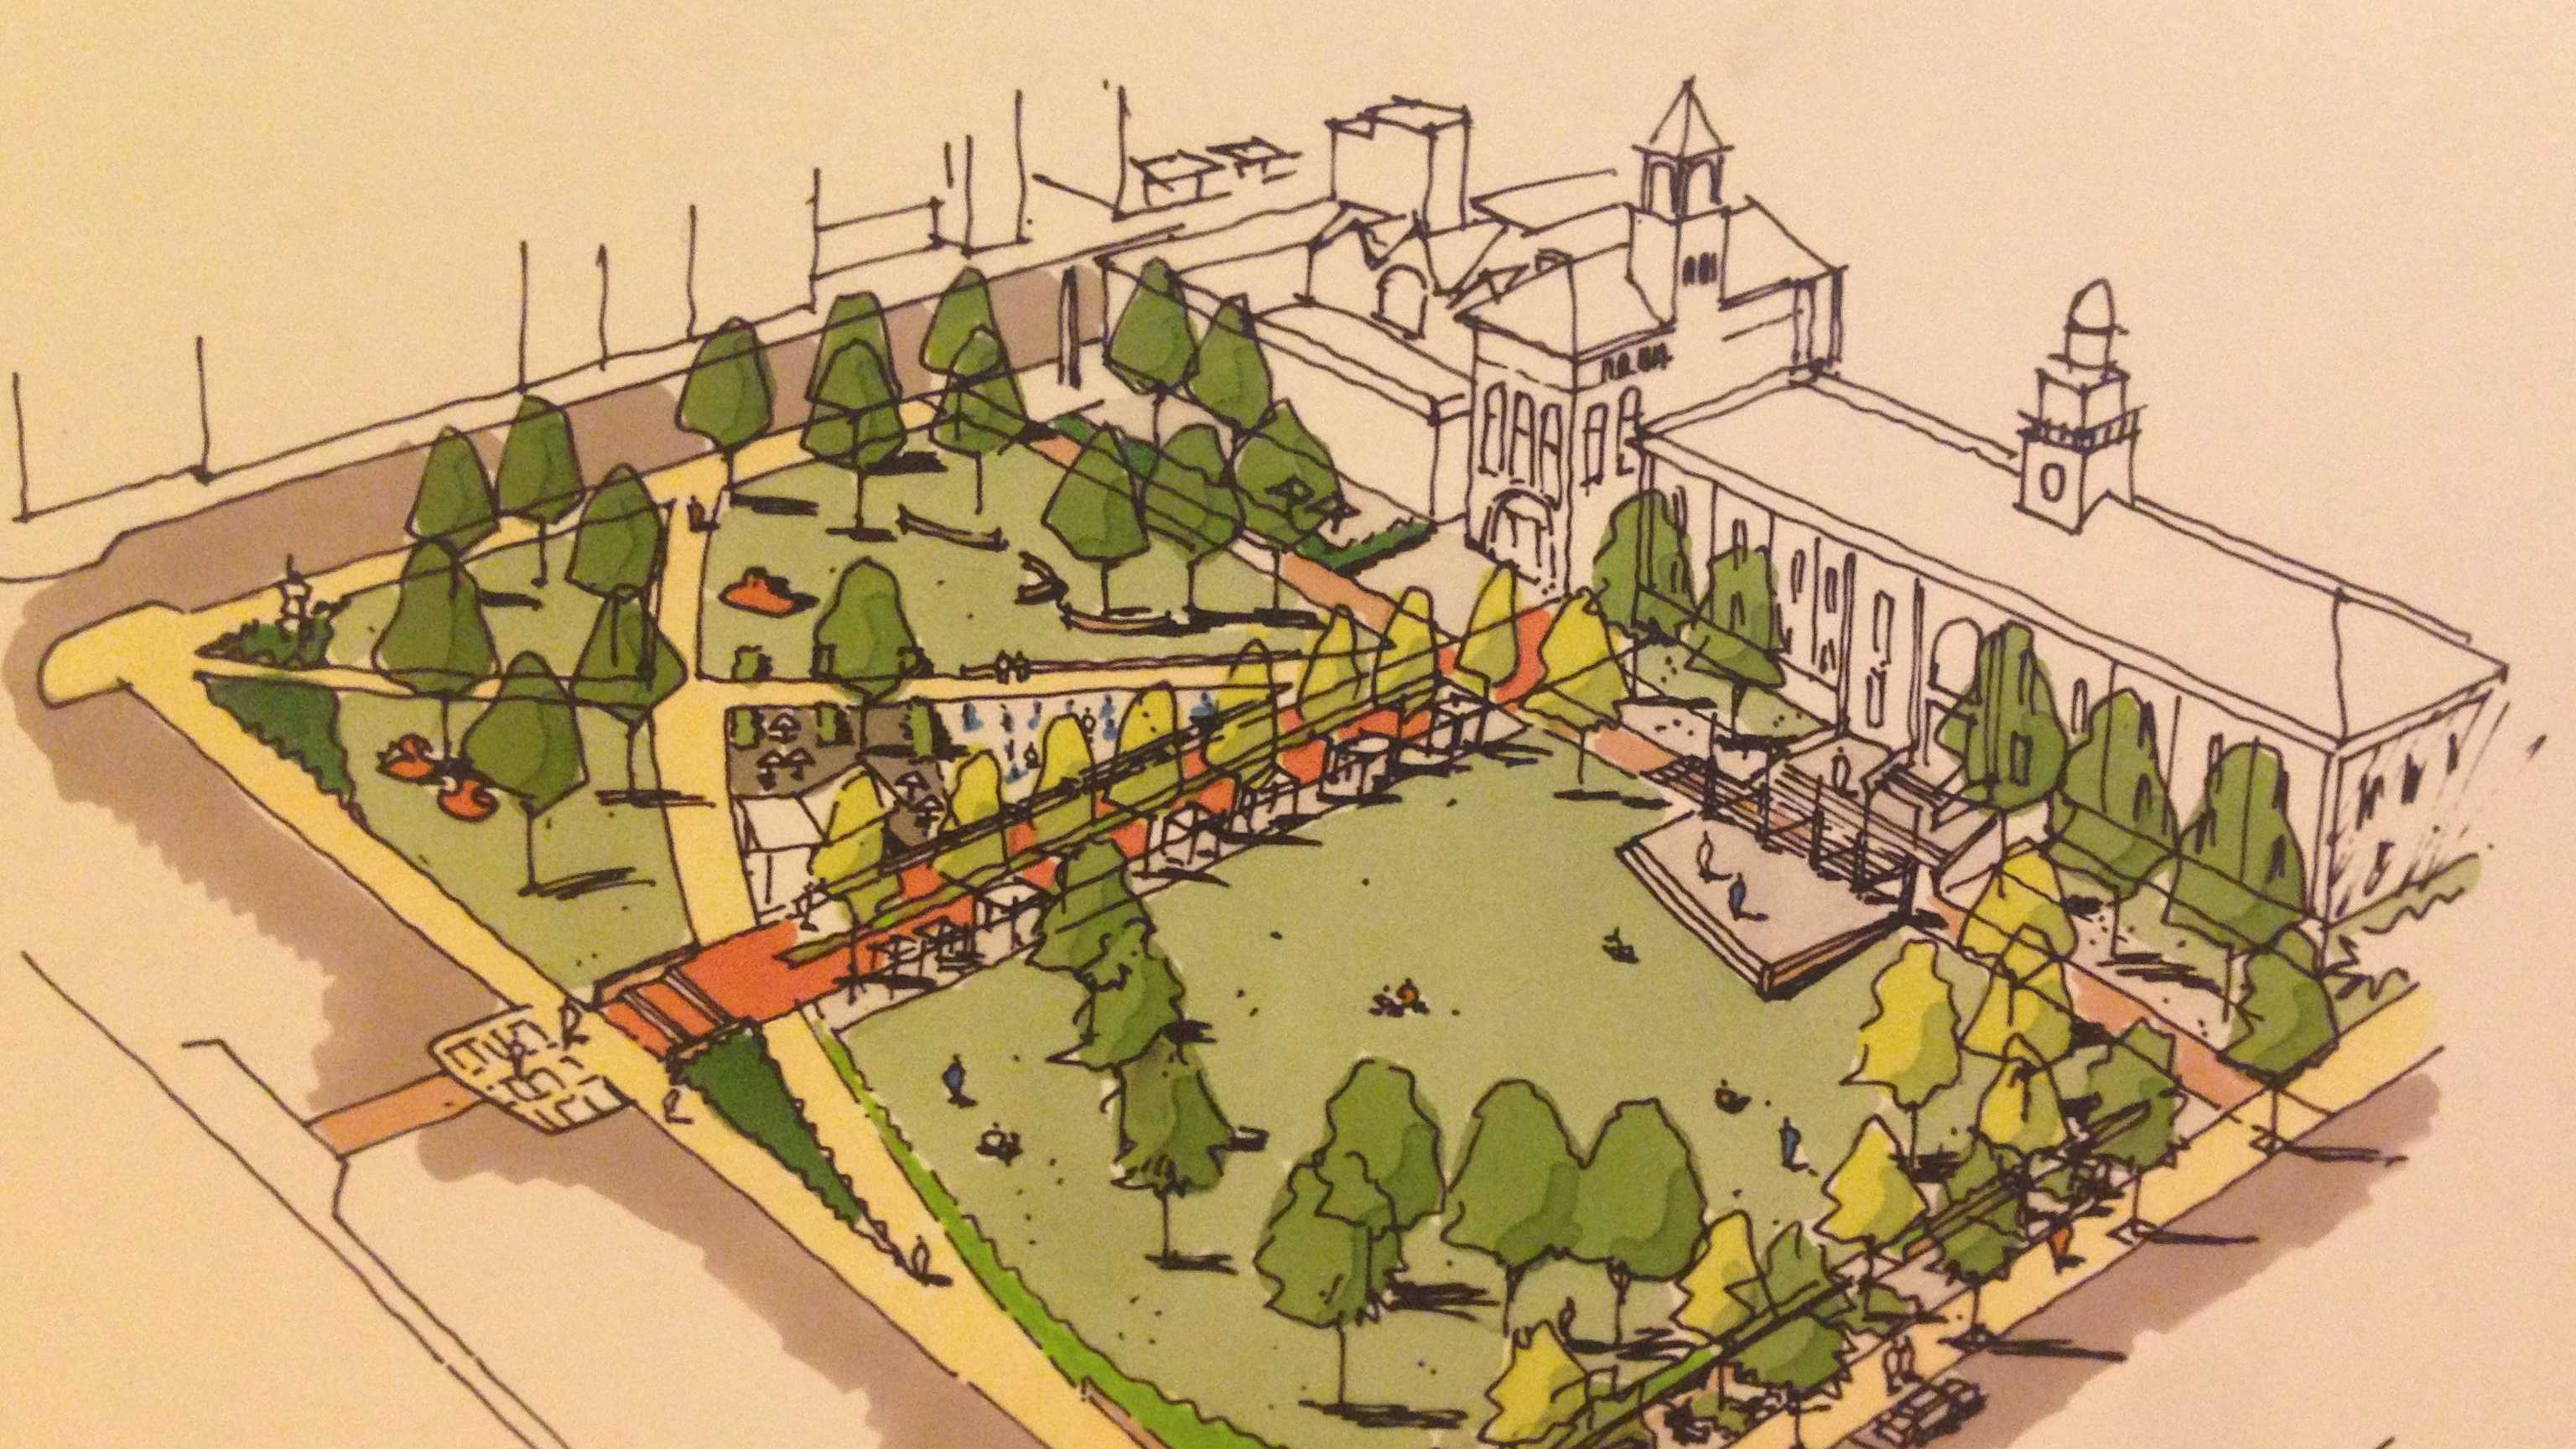 2-10-14 New City Hall Park by 2016? - img